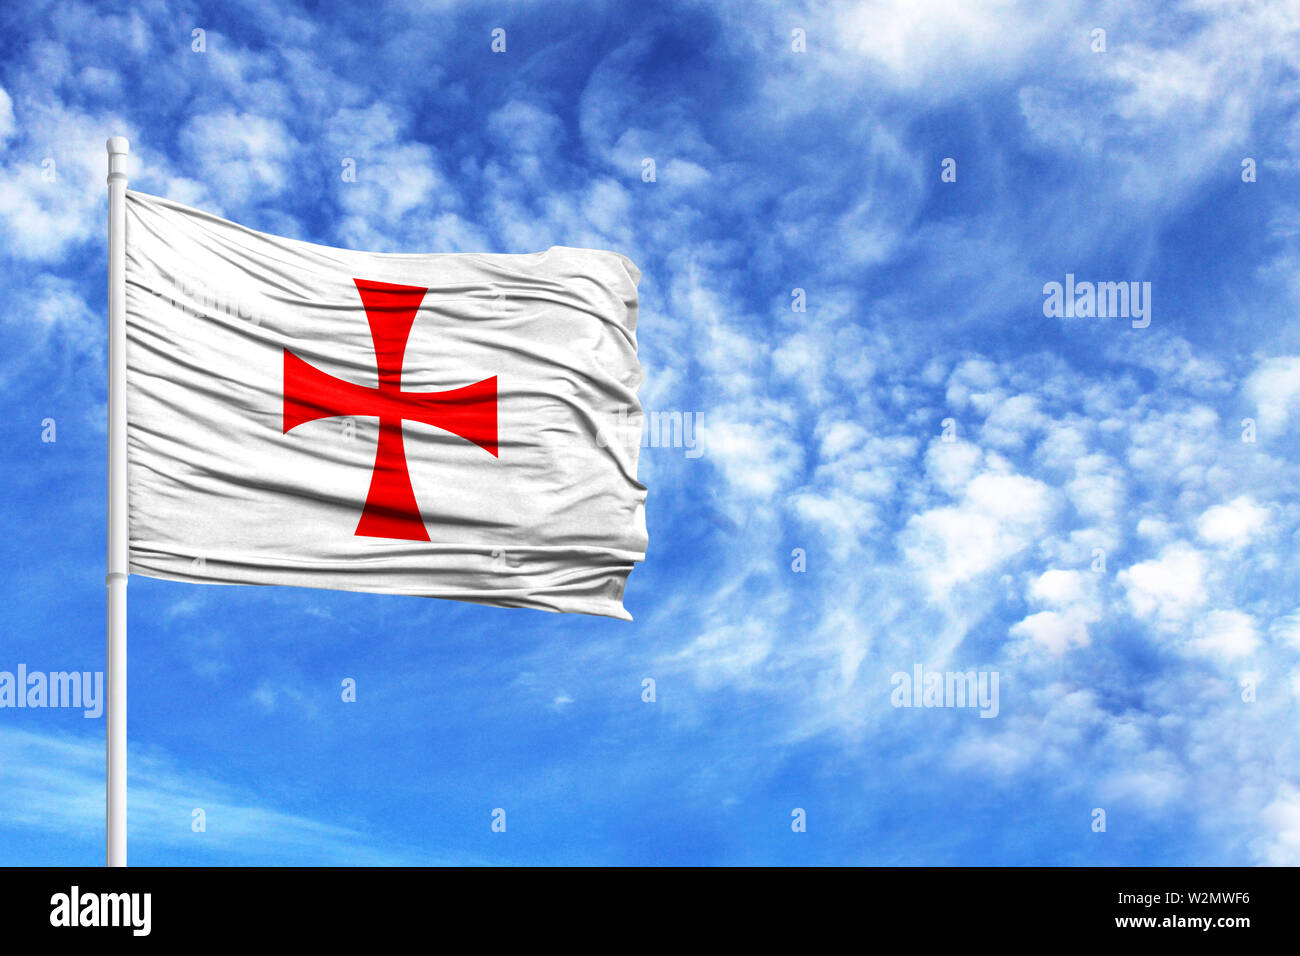 National flag of templiers on a flagpole in front of blue sky - Stock Image